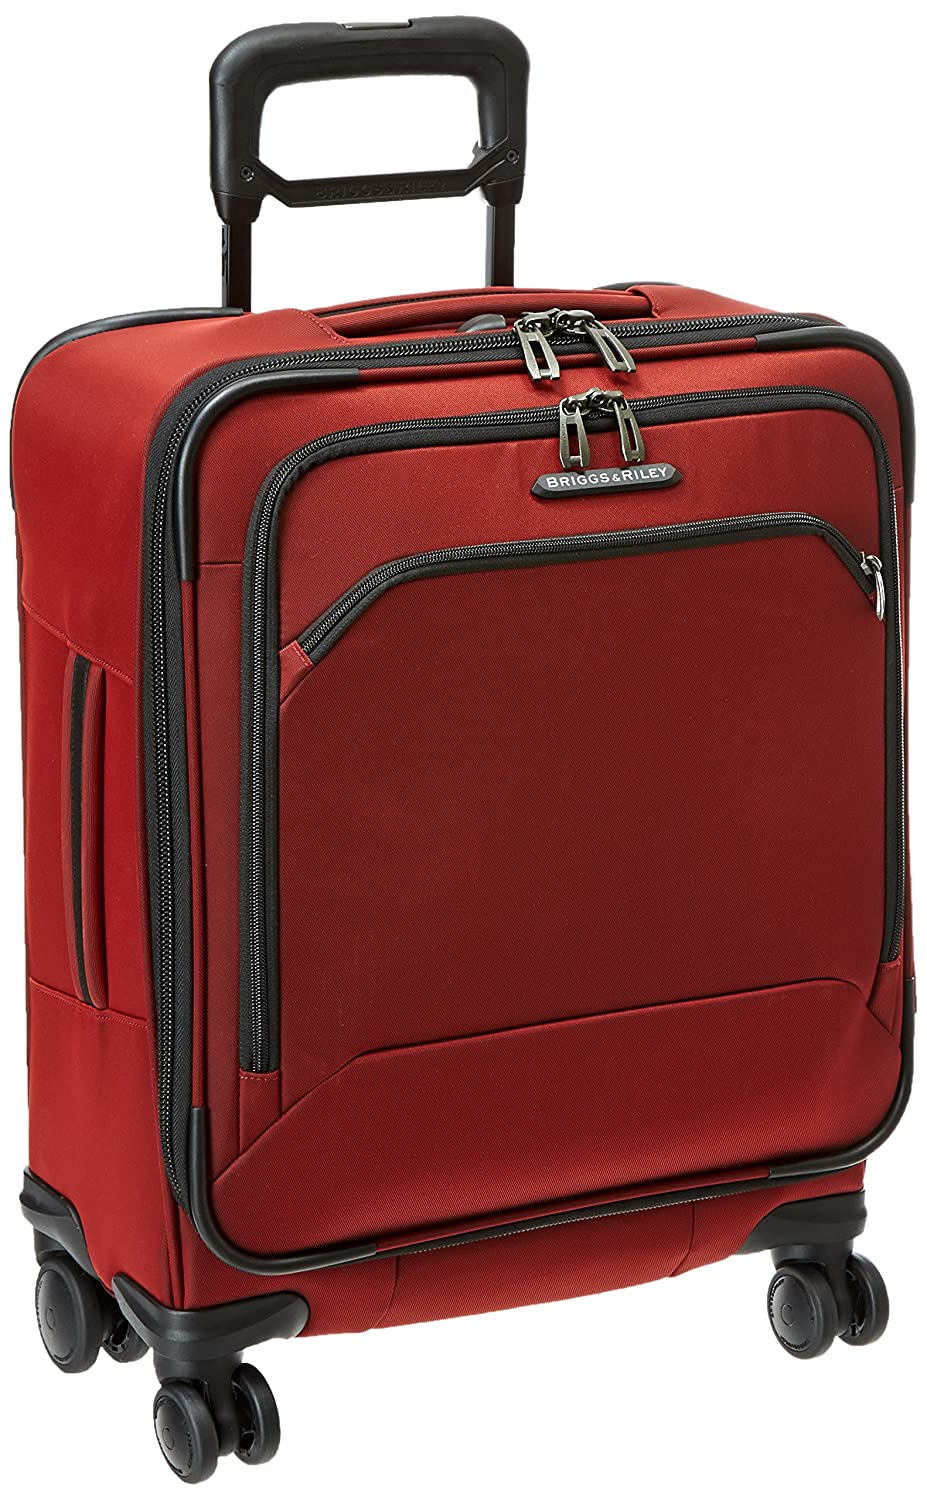 Briggs Riley International Carry-On Wide-Body Spinner, Crimson, One Size